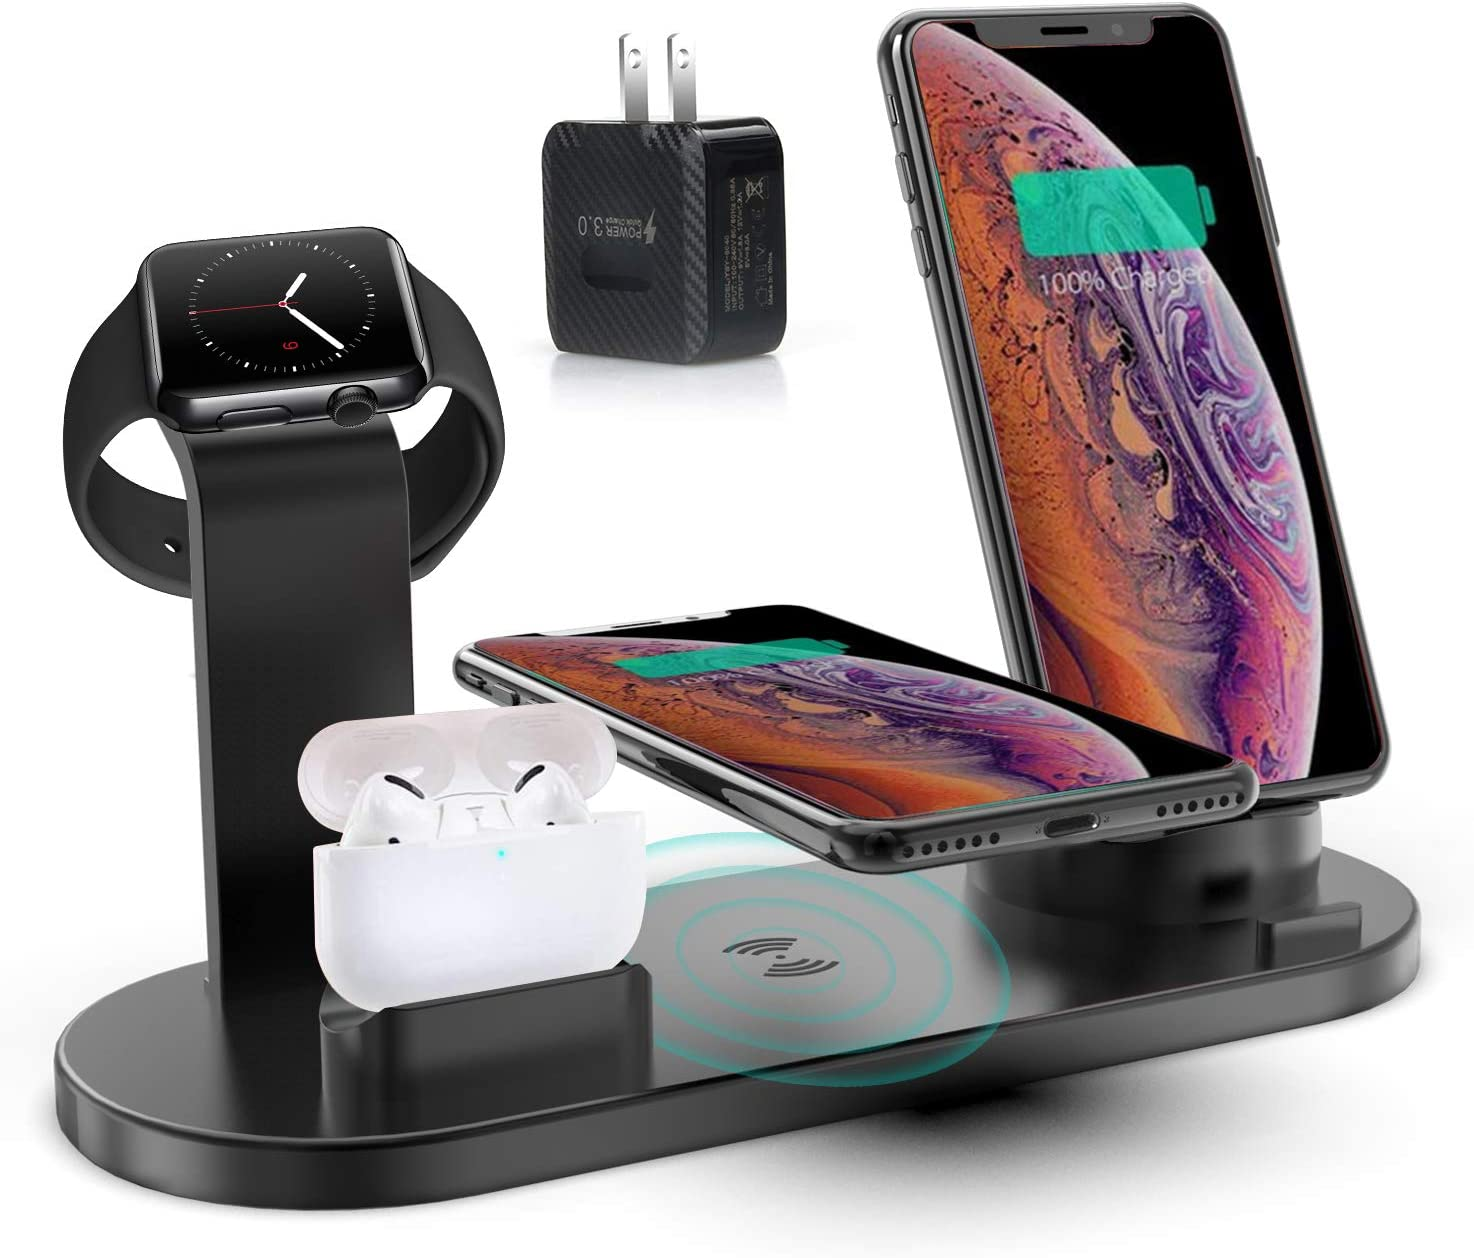 4 in 1 Wirelesse Charging Station, Compatible for AirPods/iPhone/iWatch Series, Qi Fast Wireless Charger Stand Dock for iPhone 11/11 Pro Max/X/XR/XS/ 8/8P